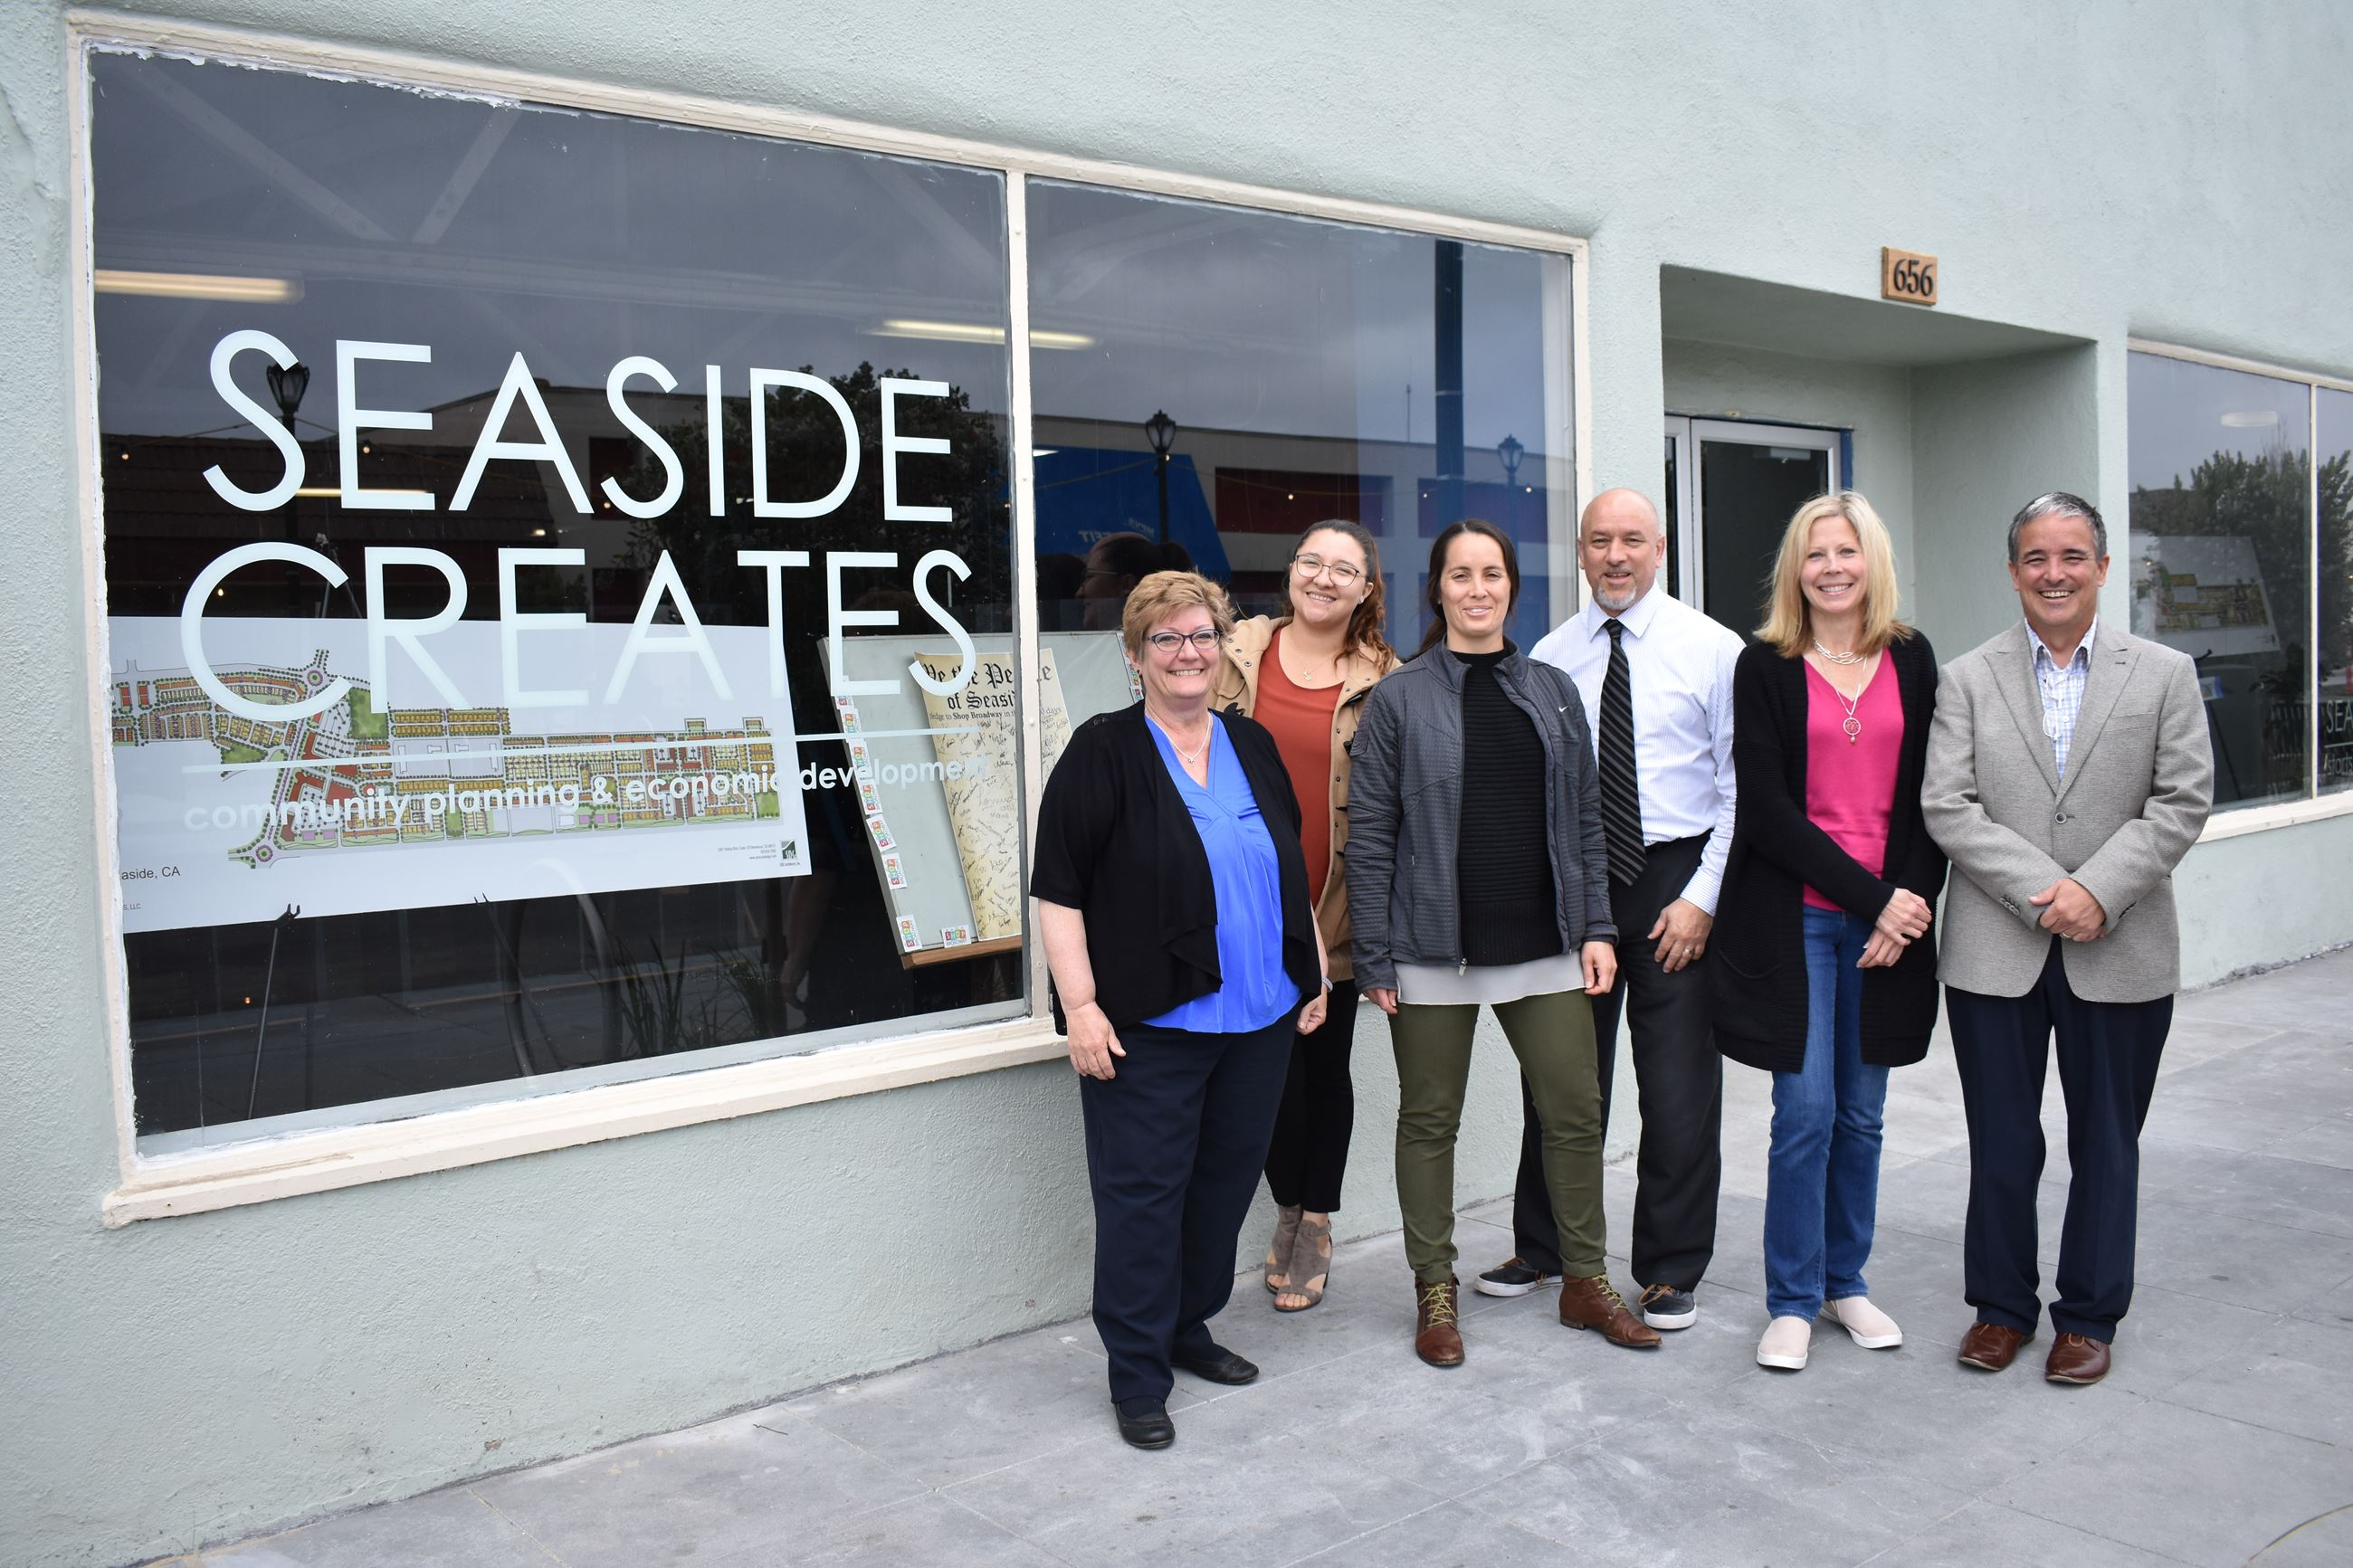 Seaside Creates staff members standing in front of Seaside Creates building